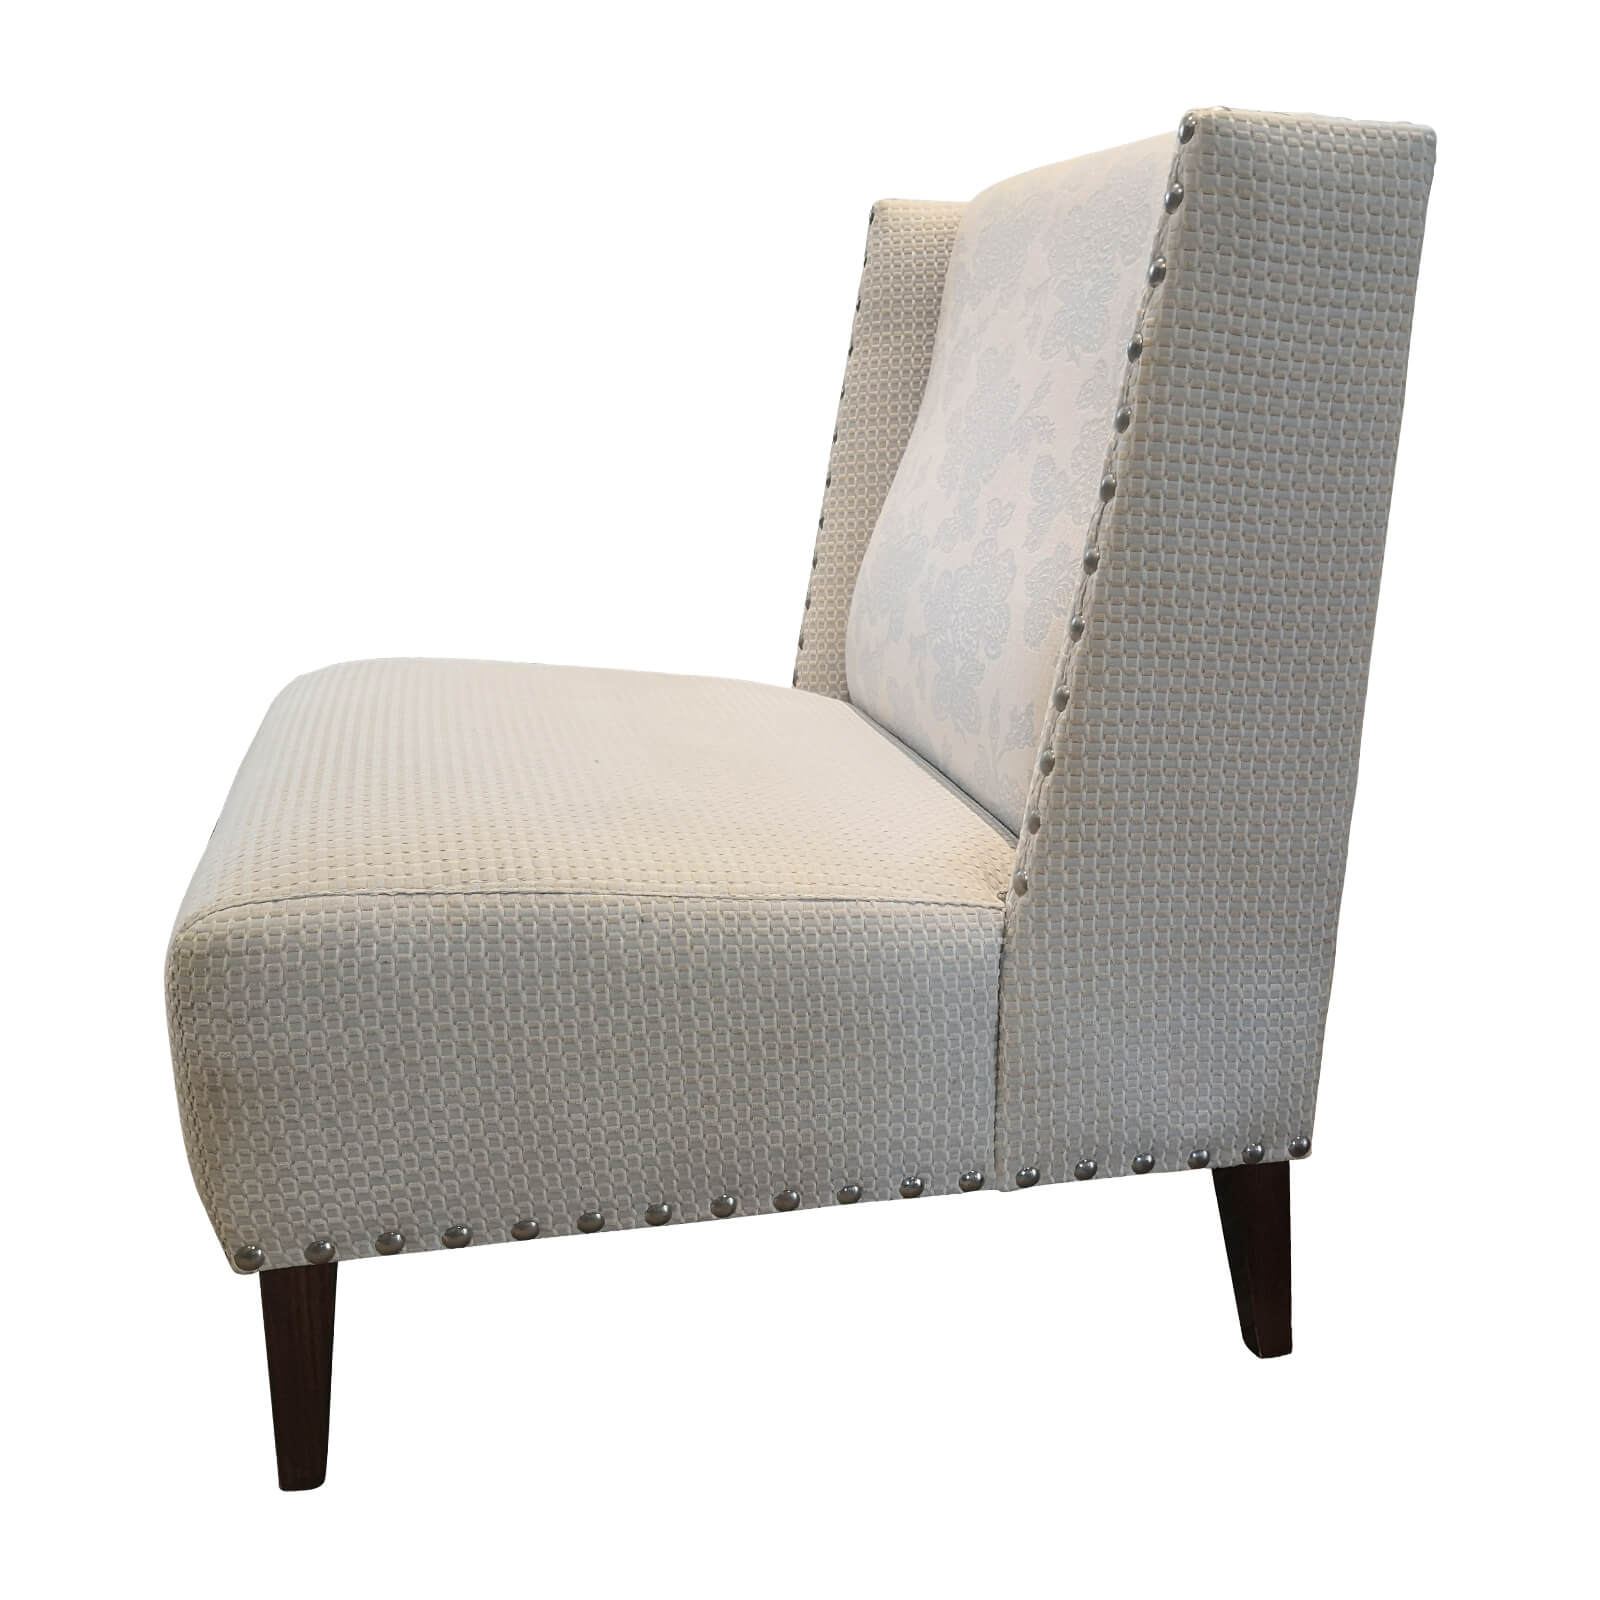 Coco Republic Brentwood Slipper Chair Two Design Lovers